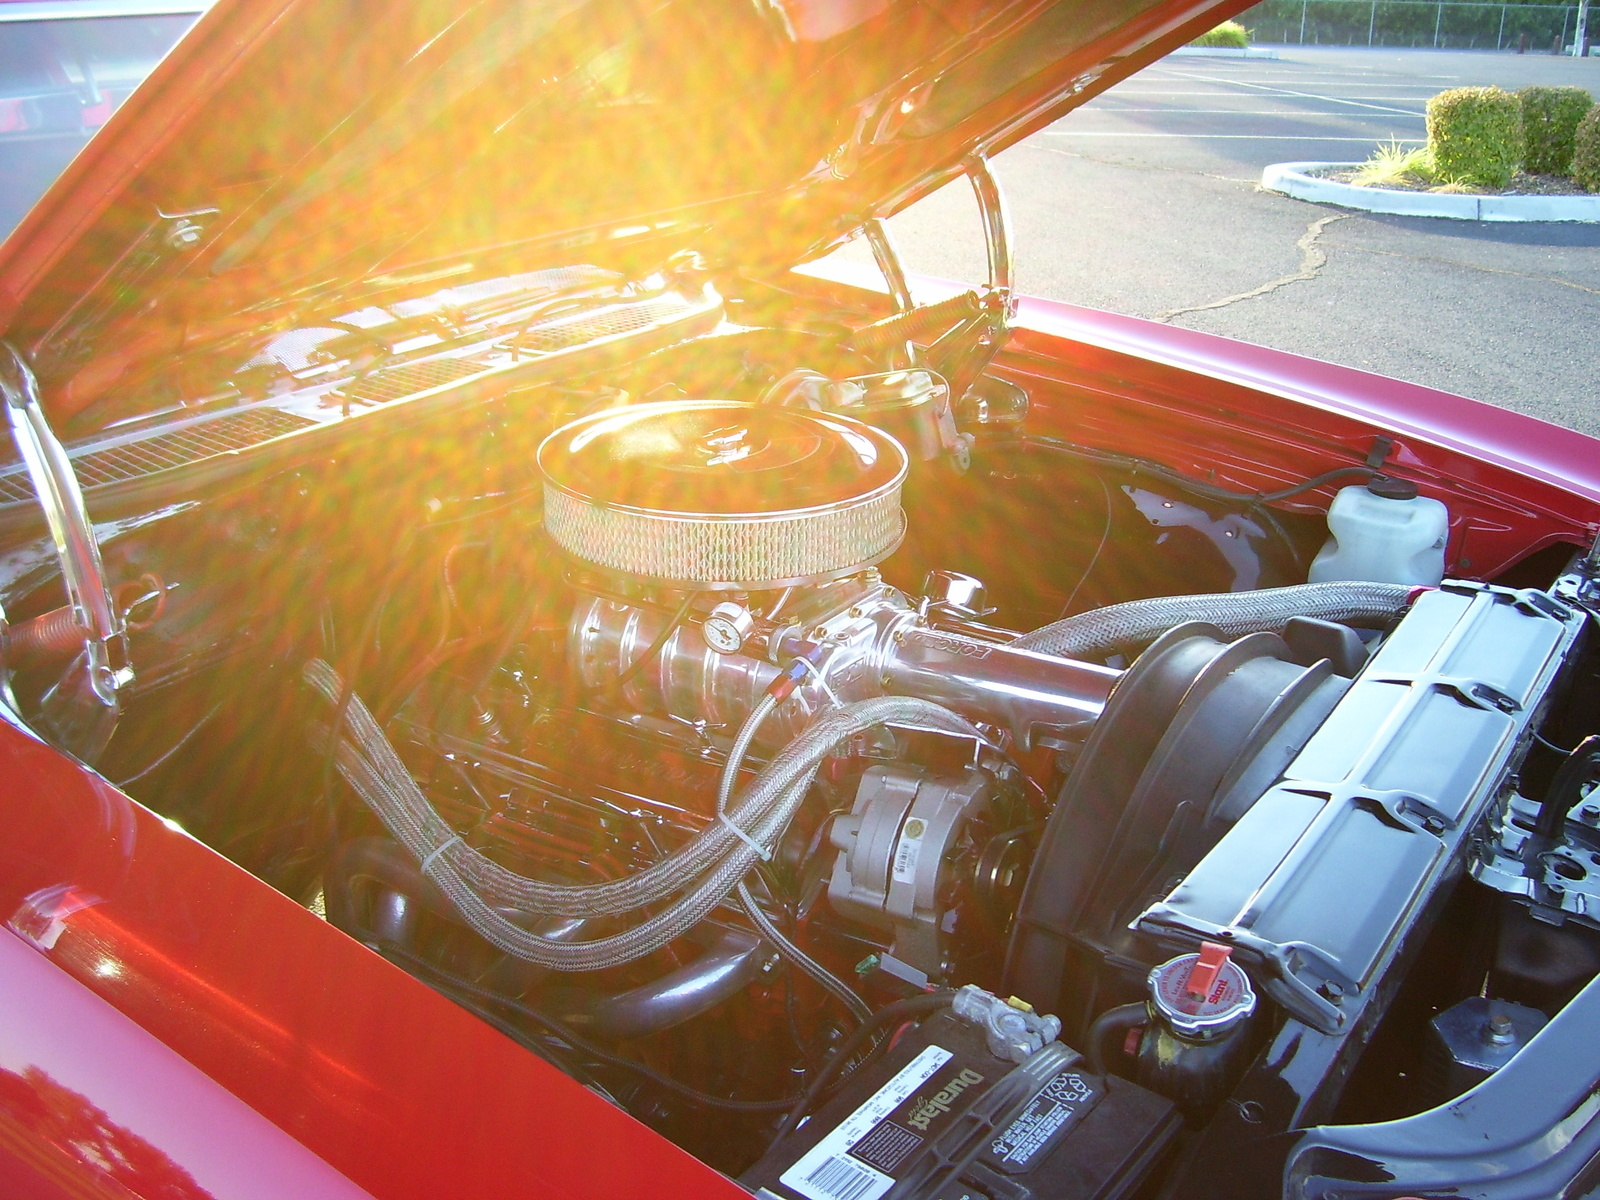 Chevrolet Chevelle Questions Value Of My 1971 Ss W 350 Chevy Hello I Have A 64 That Ive Cargurus